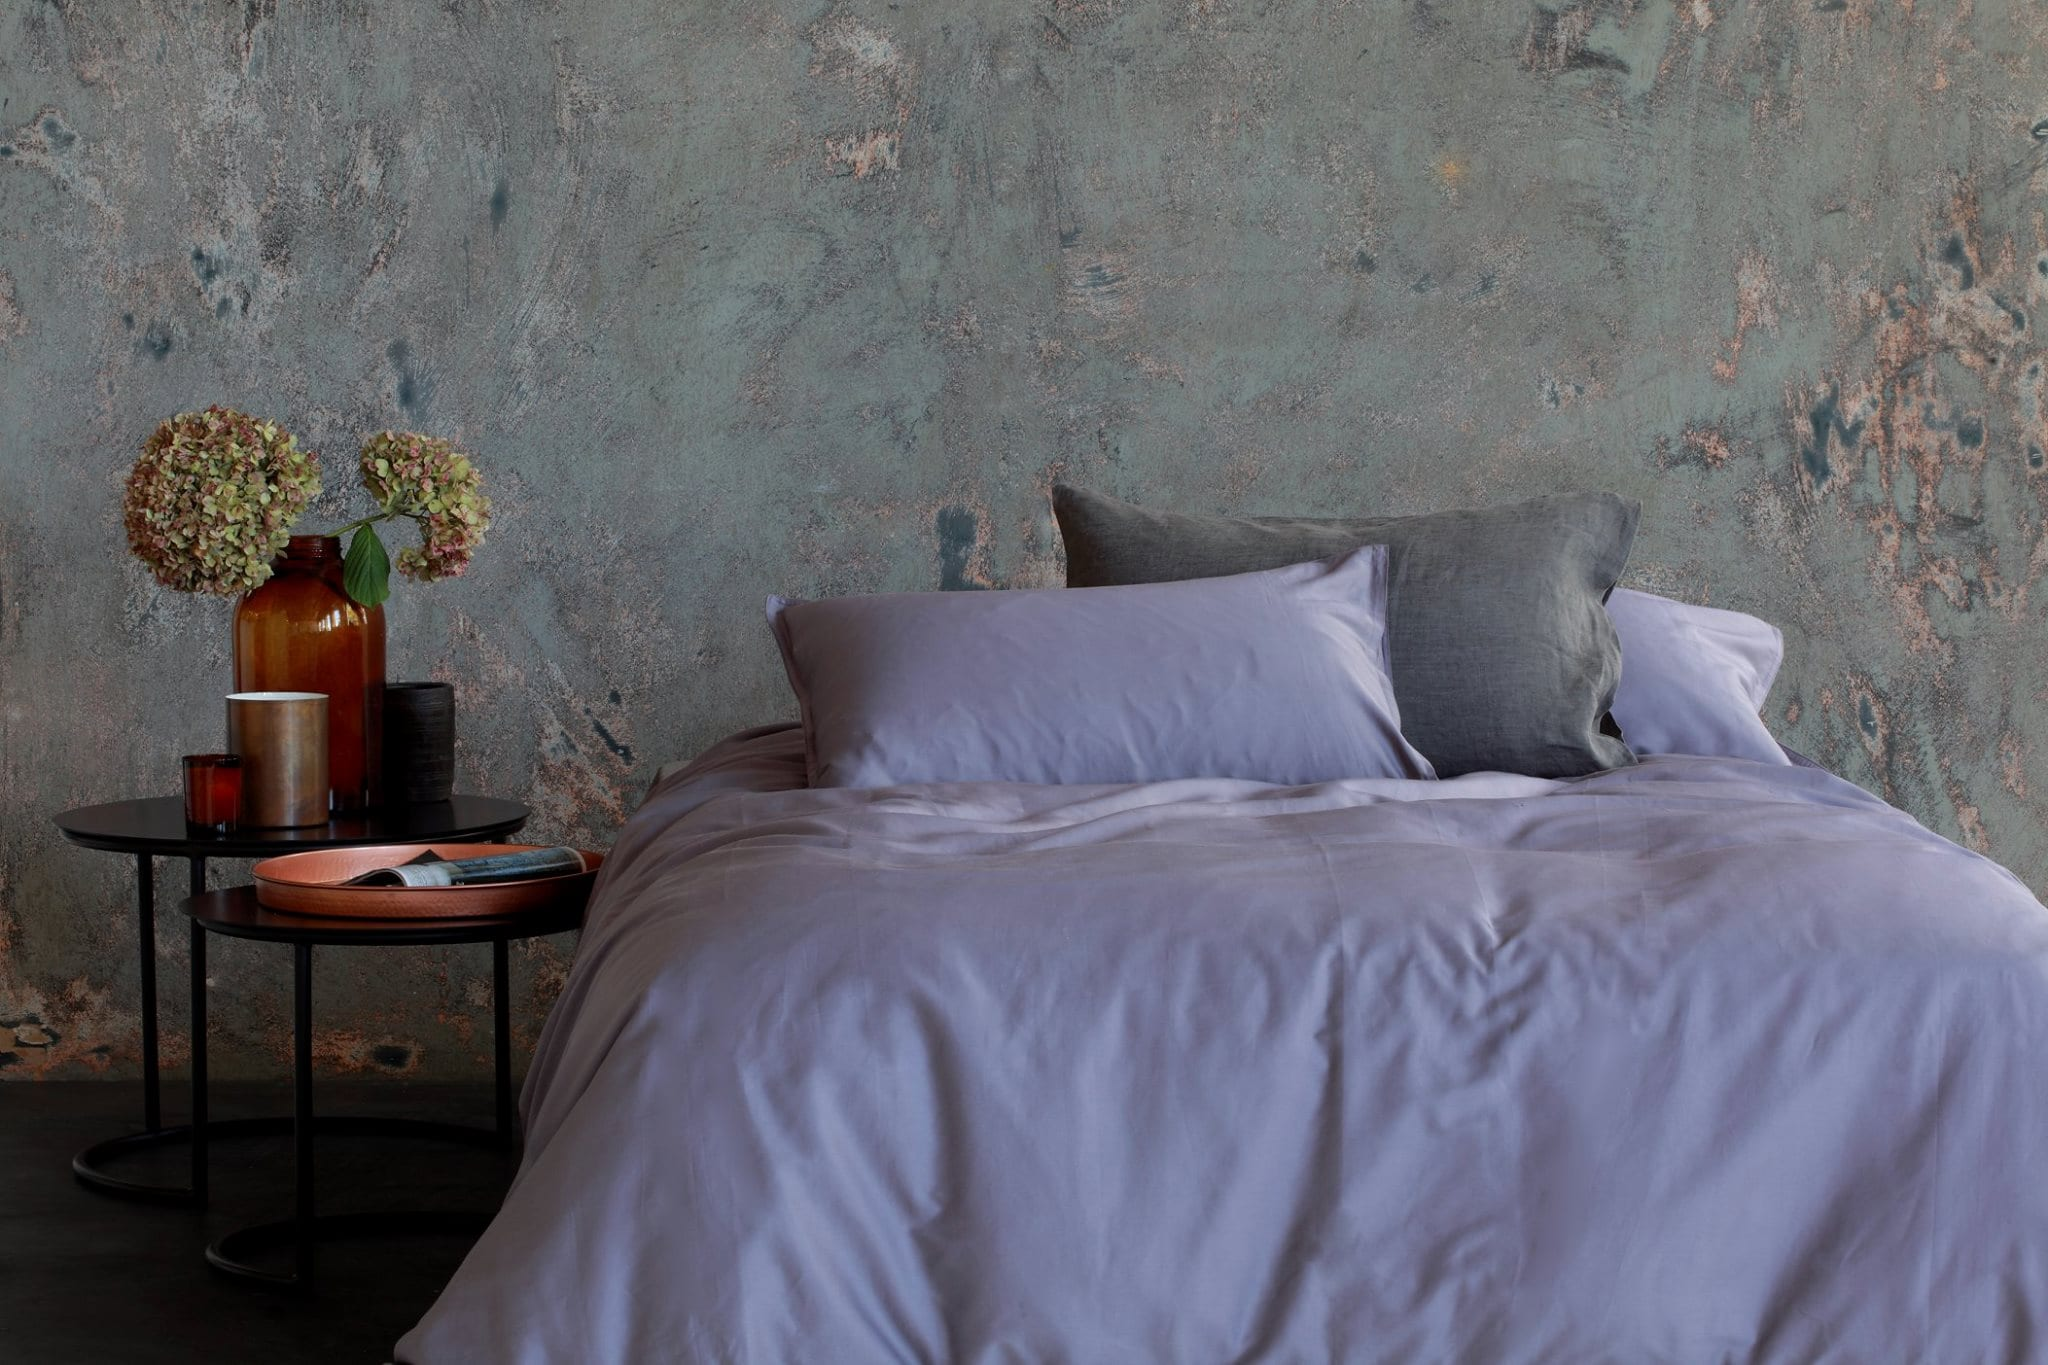 Winners Duvet Covers Win A King Duvet Cover From Loads Of Living Sa Decor